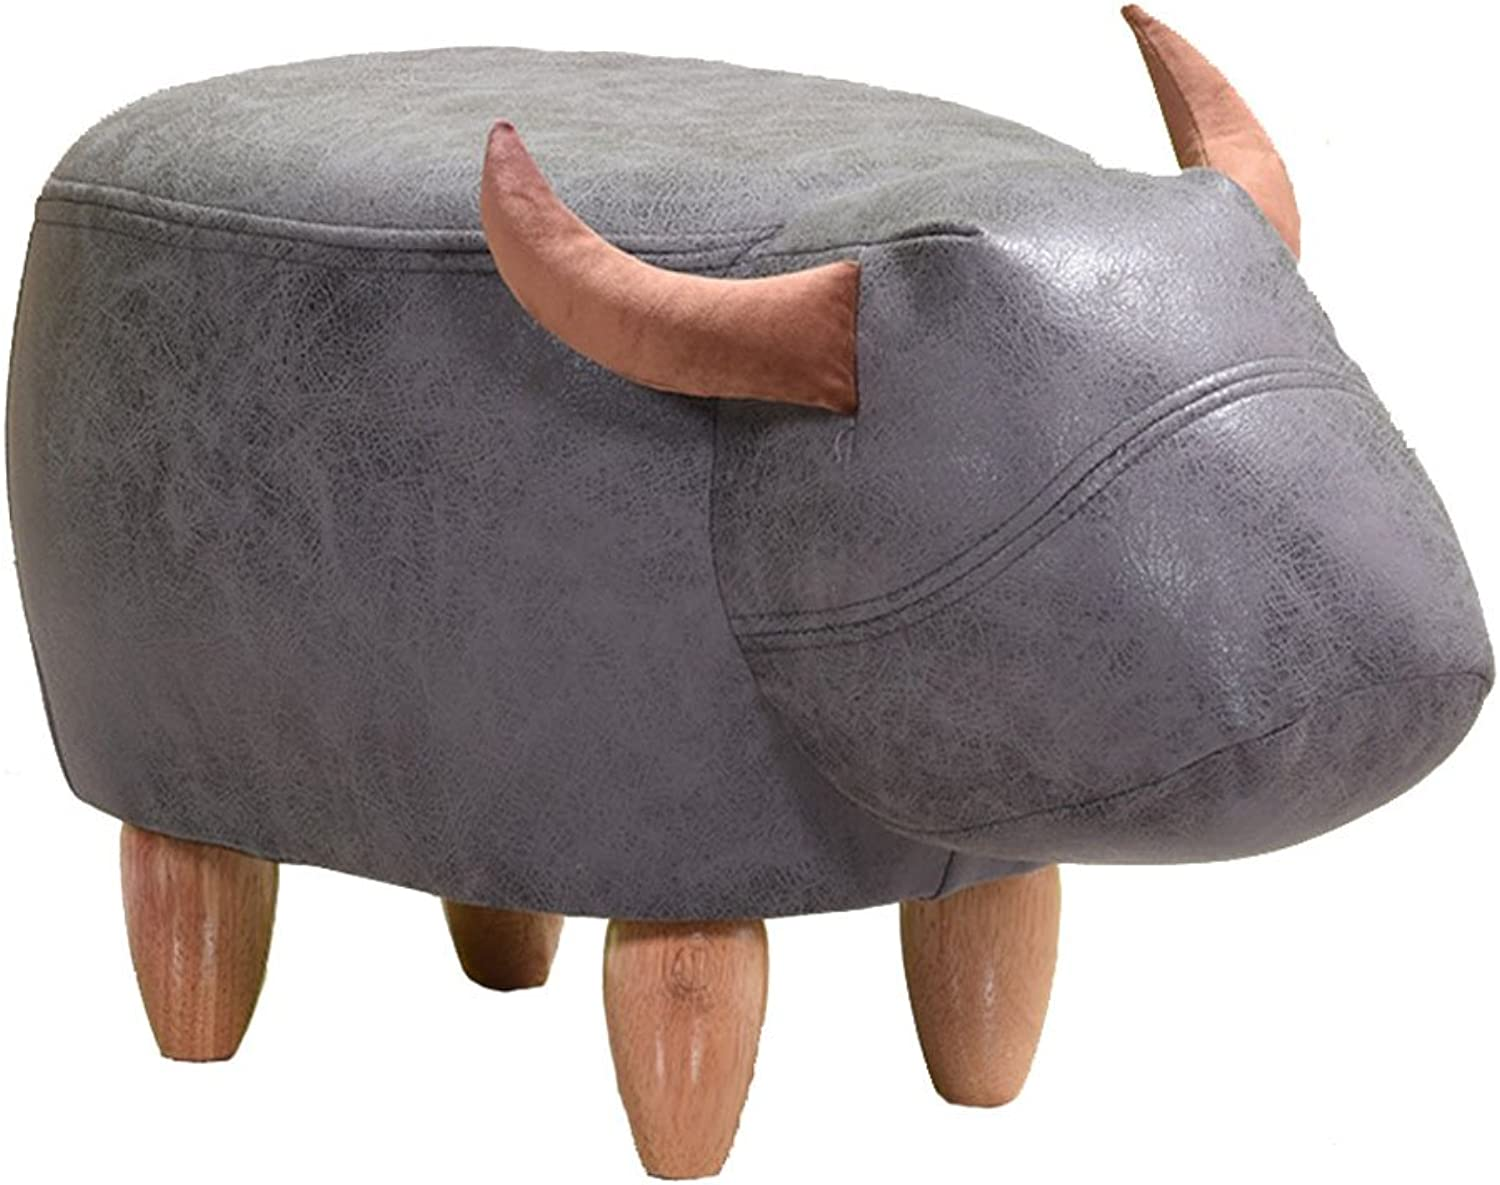 RUNWEI Creative Animal Shape, shoes Bench, Leisure Balcony, Living Room Decoration, Decoration